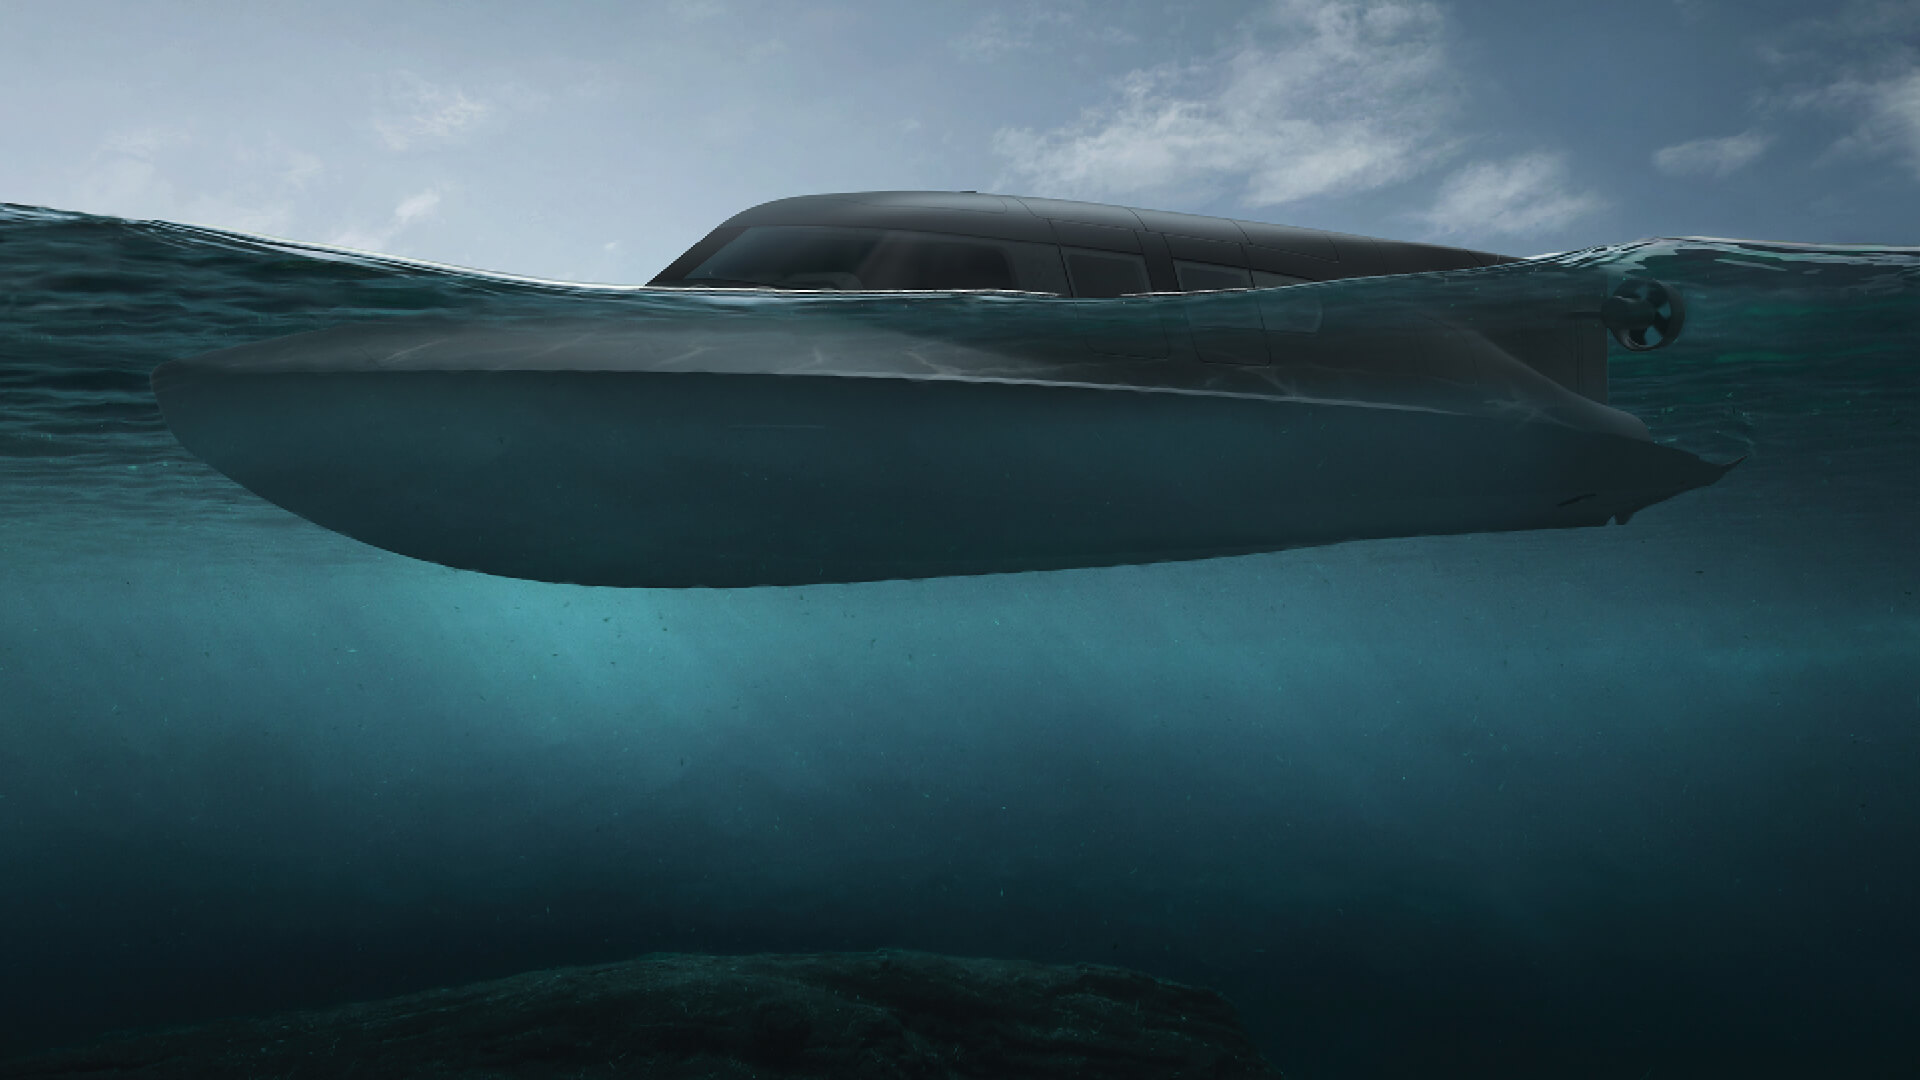 VICTA by Subsea Craft is the world's most technically advanced surface-submersible craft | VICTA | Subsea Craft | STIRworld